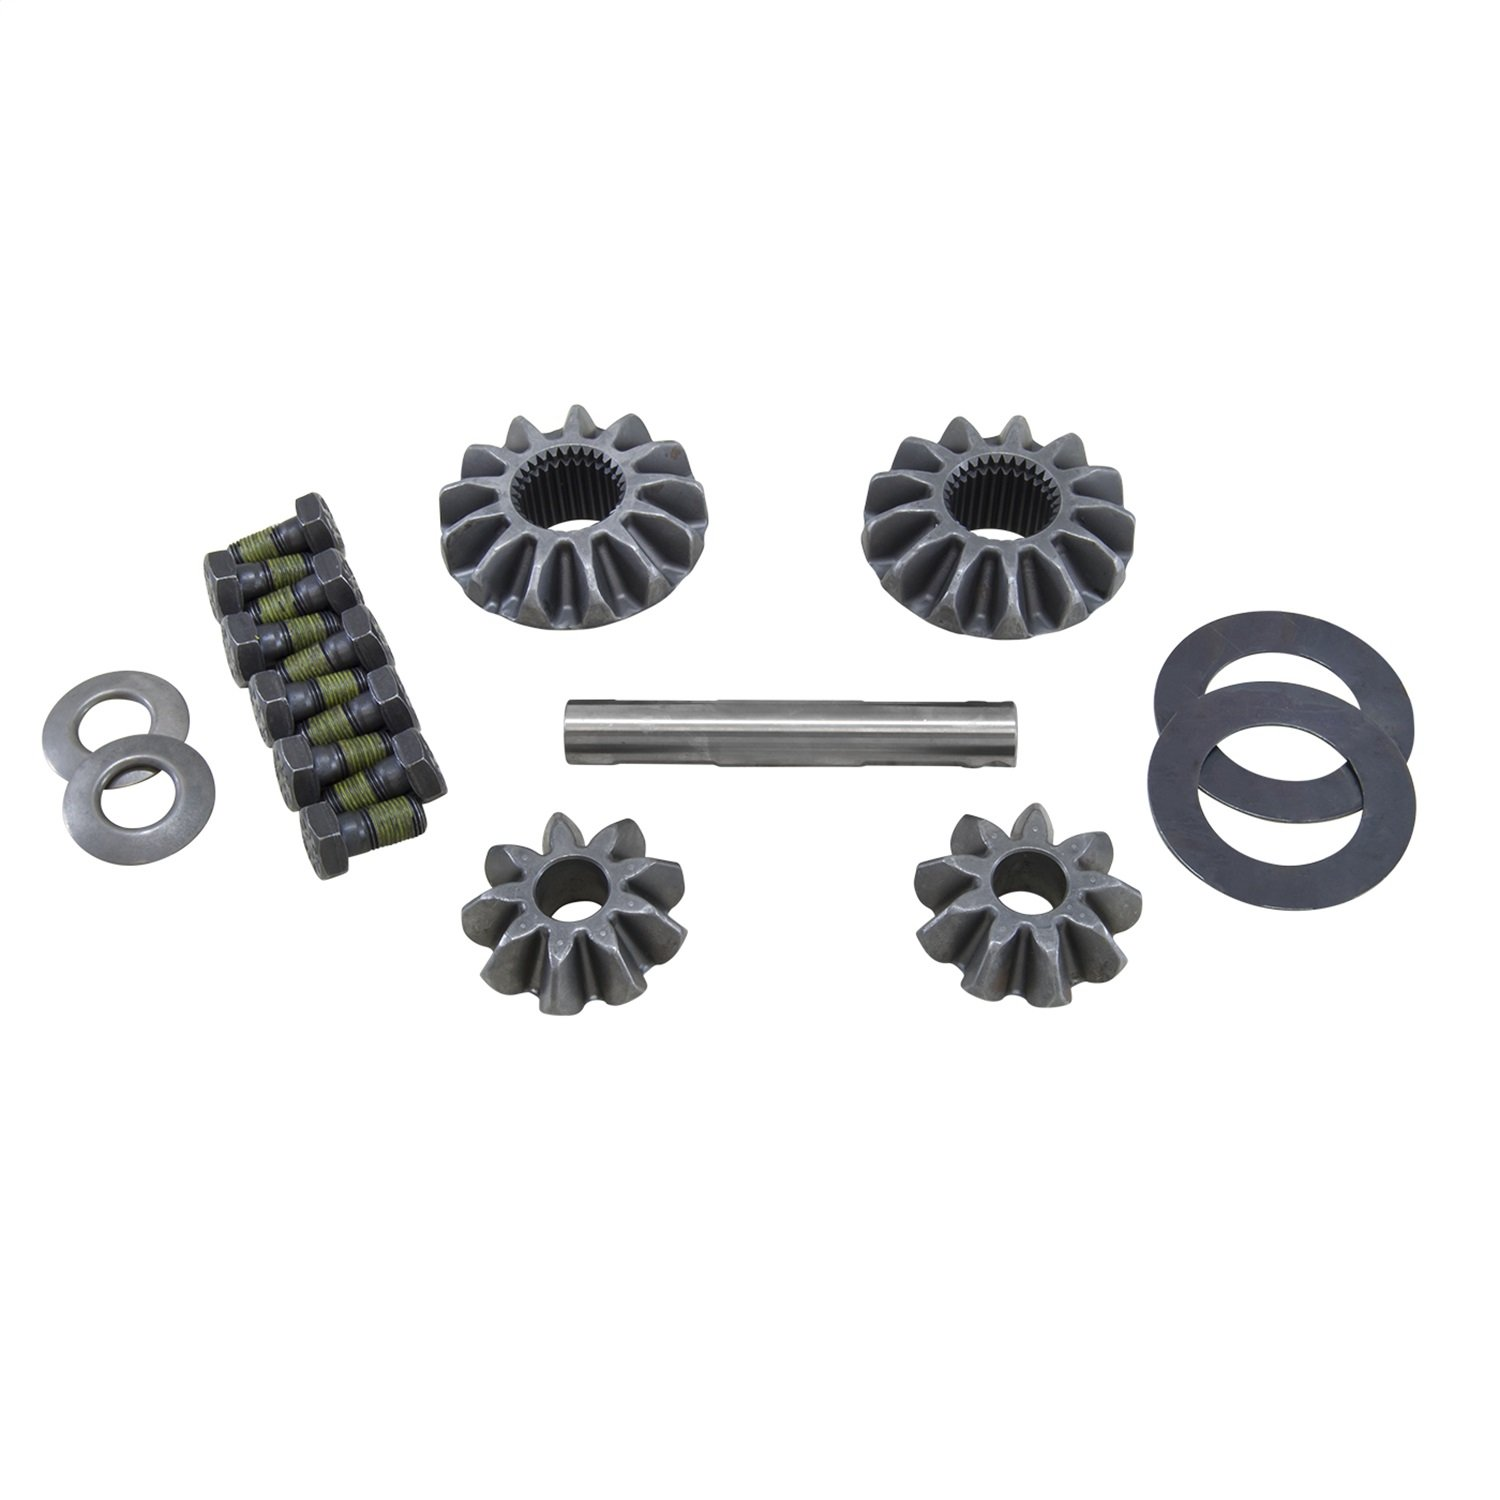 Yukon (YPKD44-S-30-JK) Replacement Standard Open Spider Gear Kit for Jeep JK Non-Rubicon Dana 44 Differential with 30-Spline Axle Yukon Gear